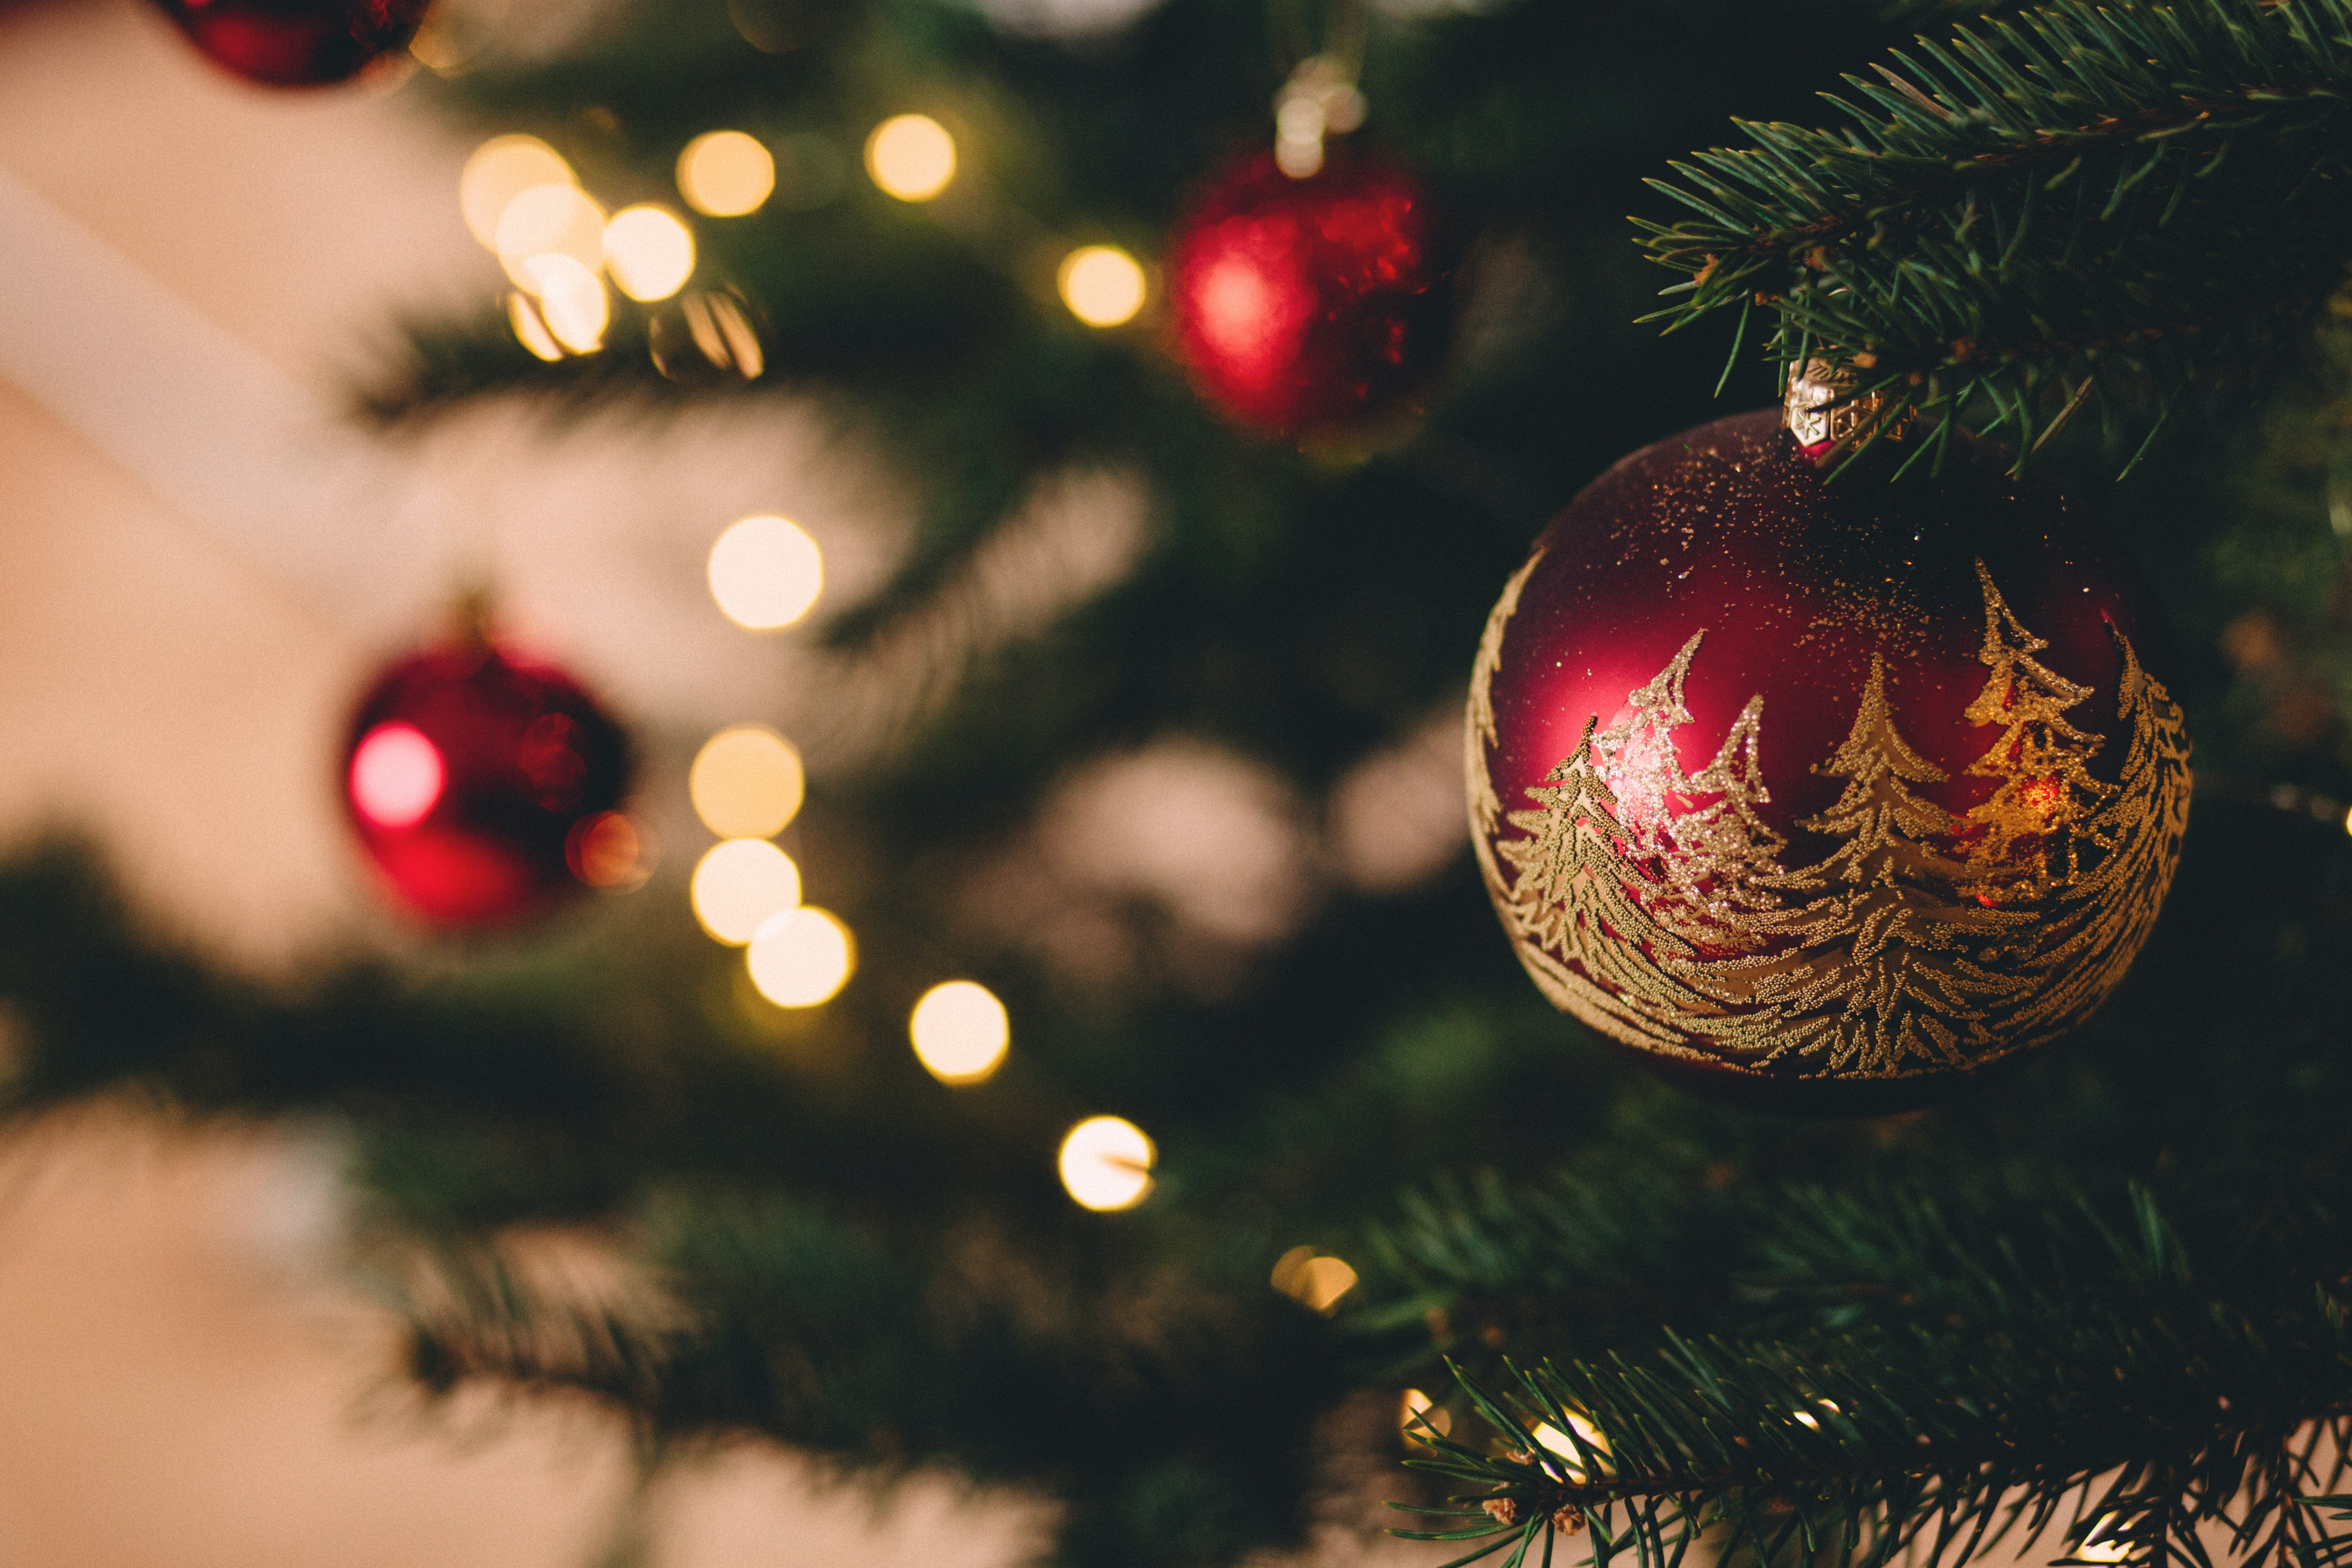 Christmas Tree With Baubles · Free Stock Photo